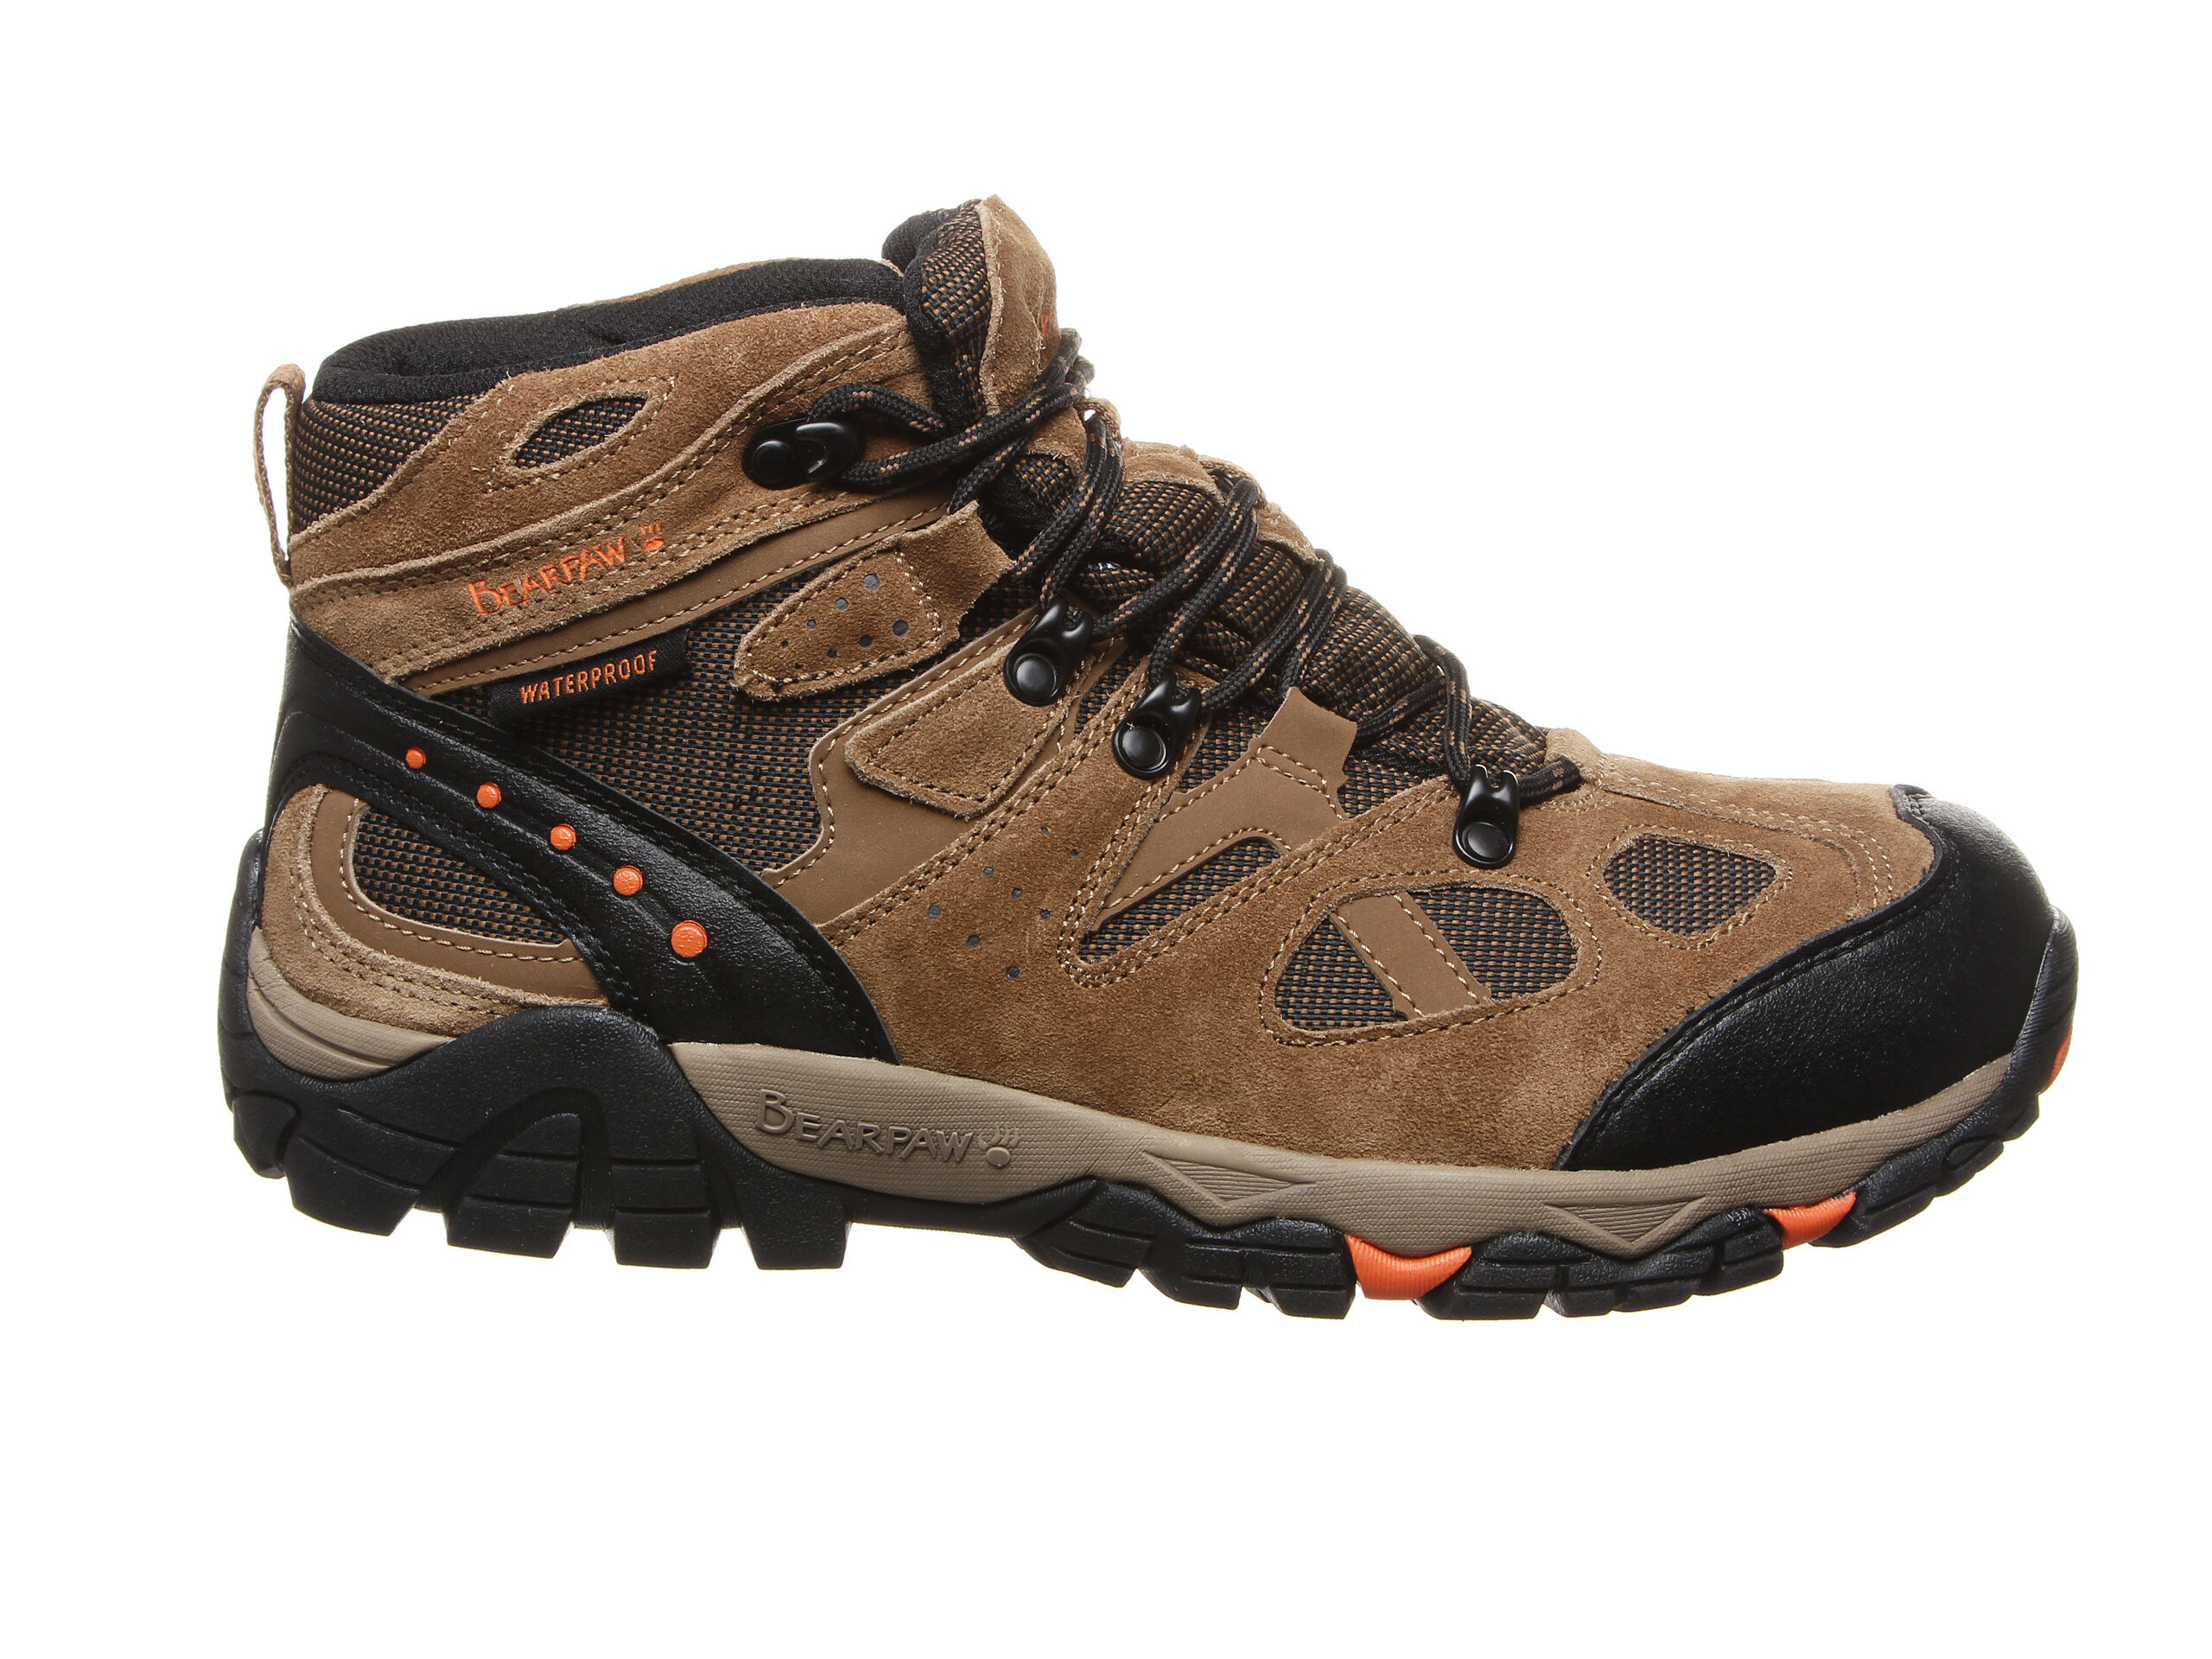 Men's Bearpaw Brock Hiking Boots Hickory